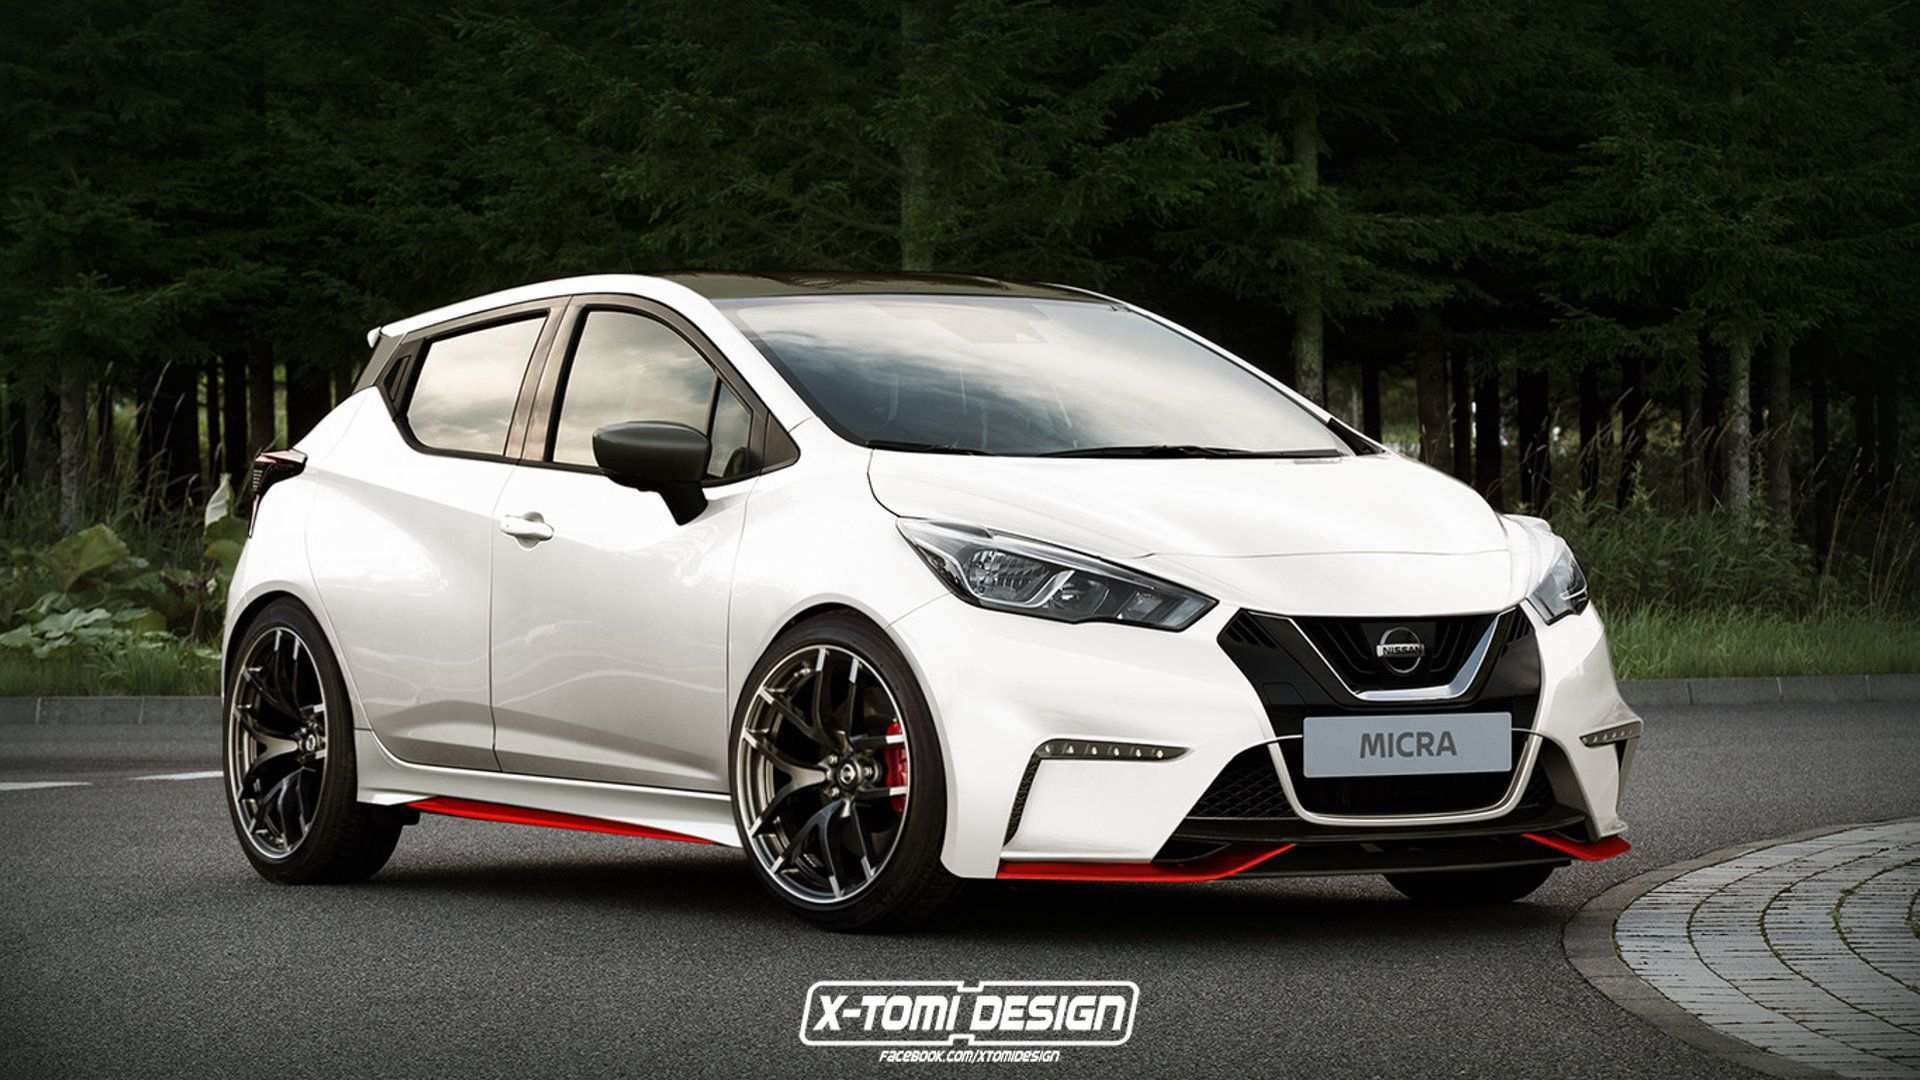 90 Great 2020 Nissan Micra 2018 Pictures by 2020 Nissan Micra 2018